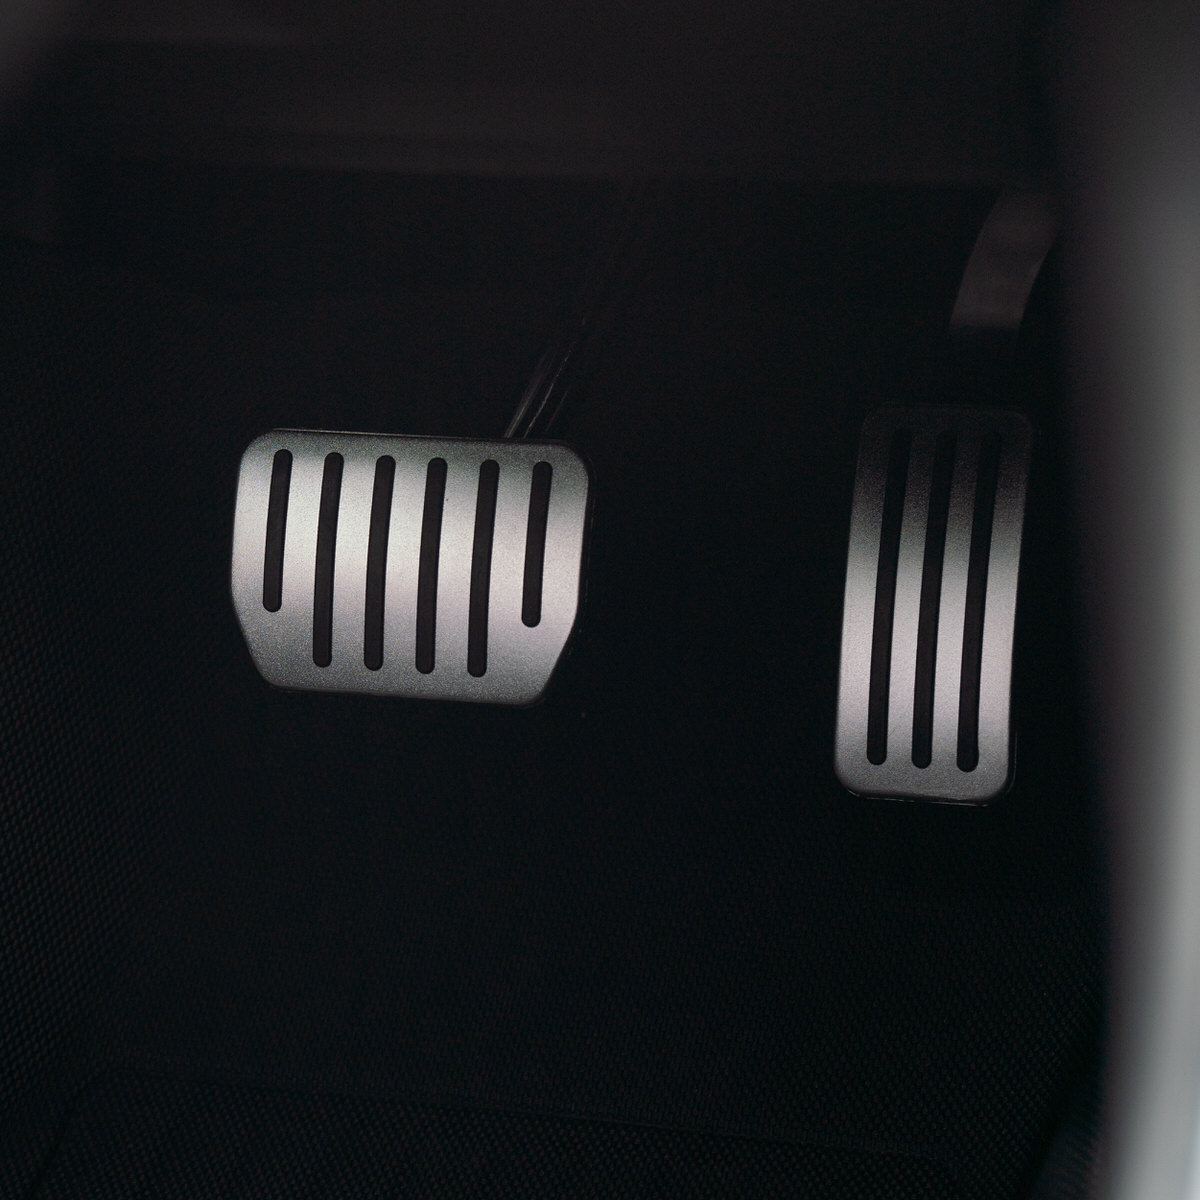 Performance Pedals for Model 3